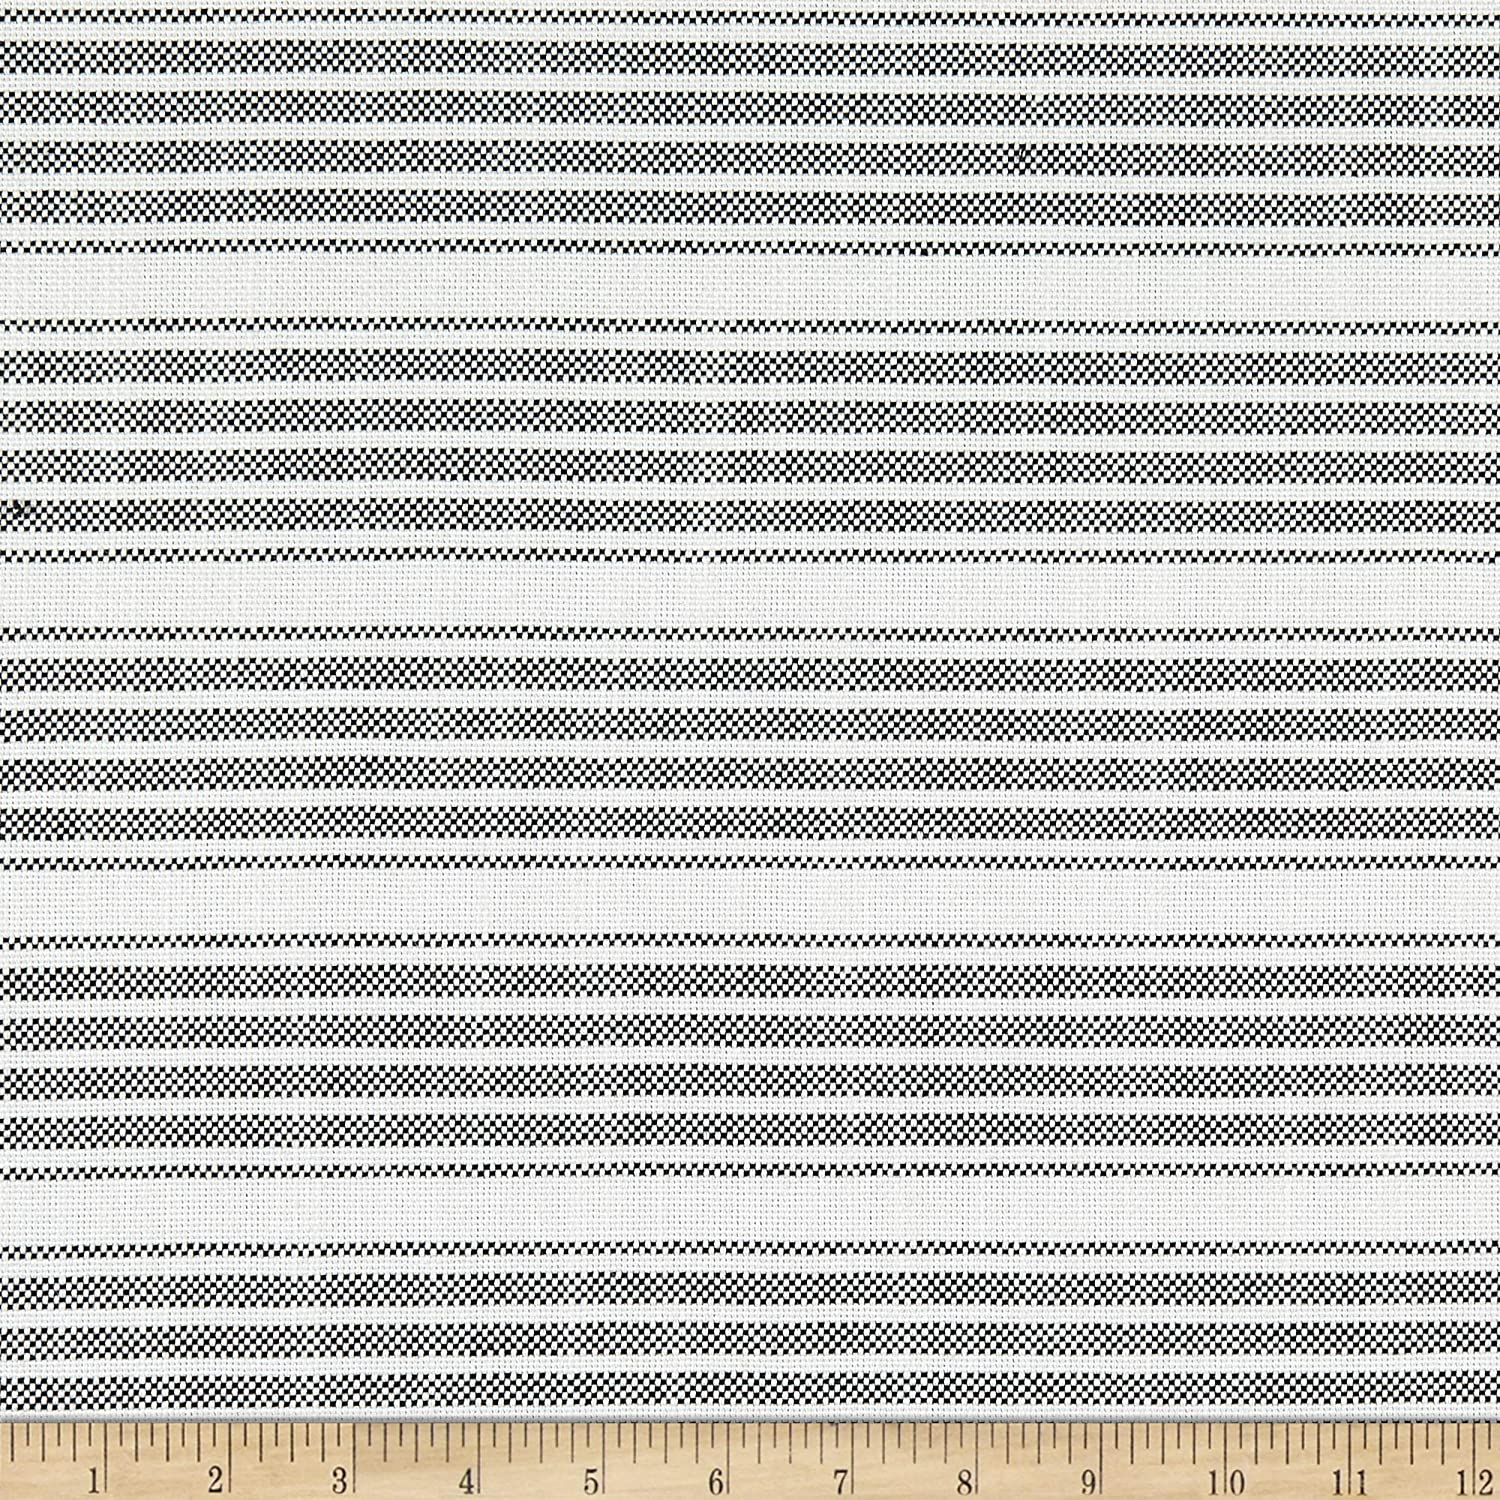 Artistry Performance Linen Beringen Woven low-pricing Fabric the by 67% OFF of fixed price Tuxedo